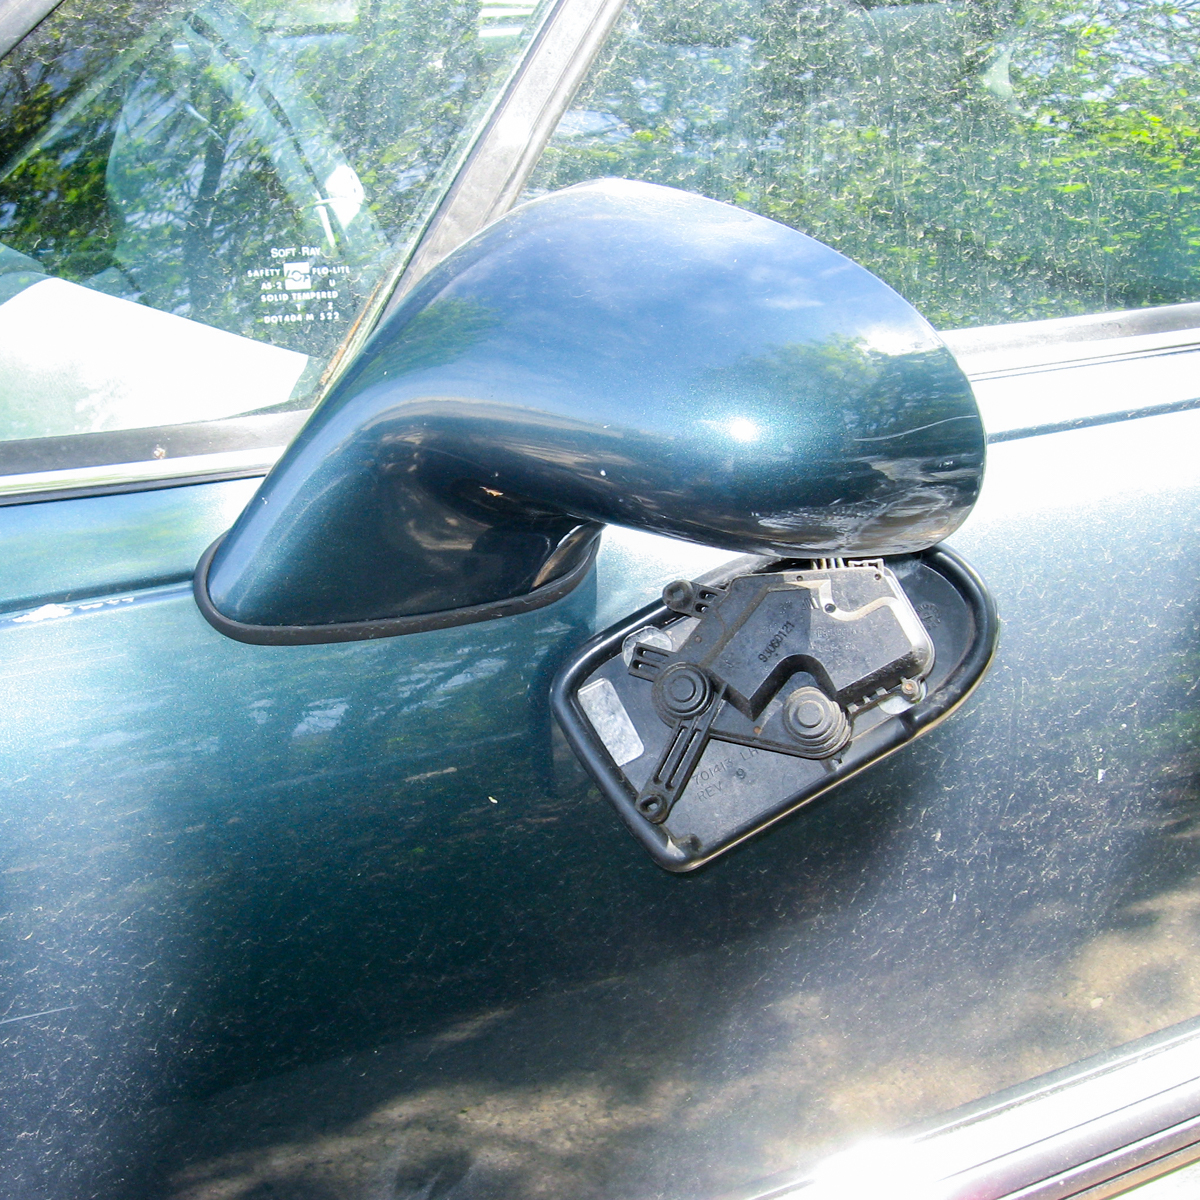 Side Mirror Replacement Costs & Repairs | AutoGuru